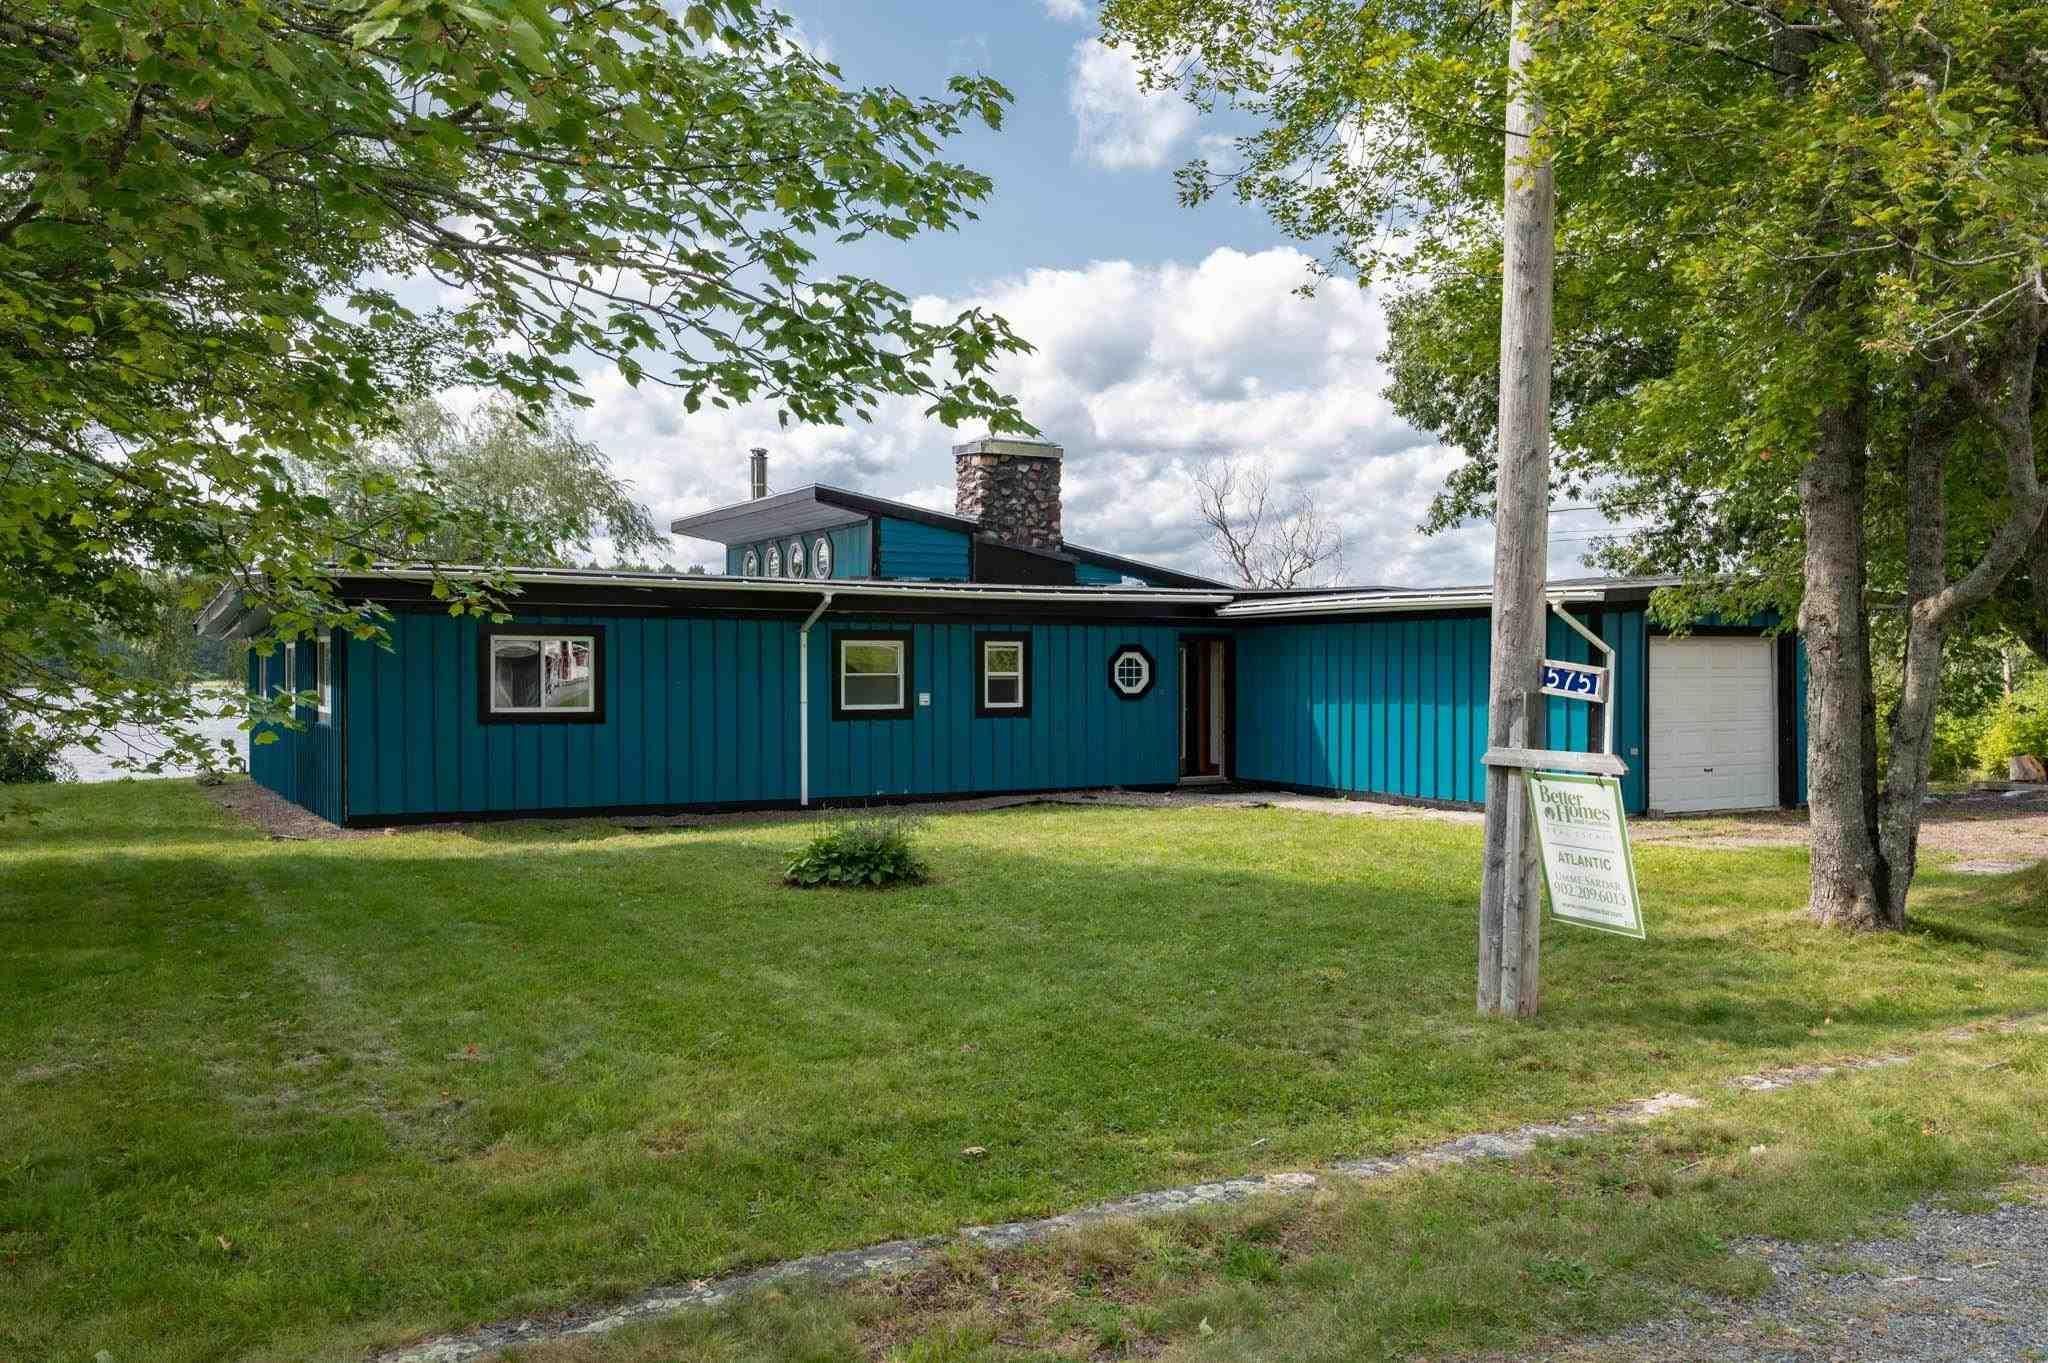 Main Photo: 5751 Highway 10 in New Germany: 405-Lunenburg County Residential for sale (South Shore)  : MLS®# 202123667